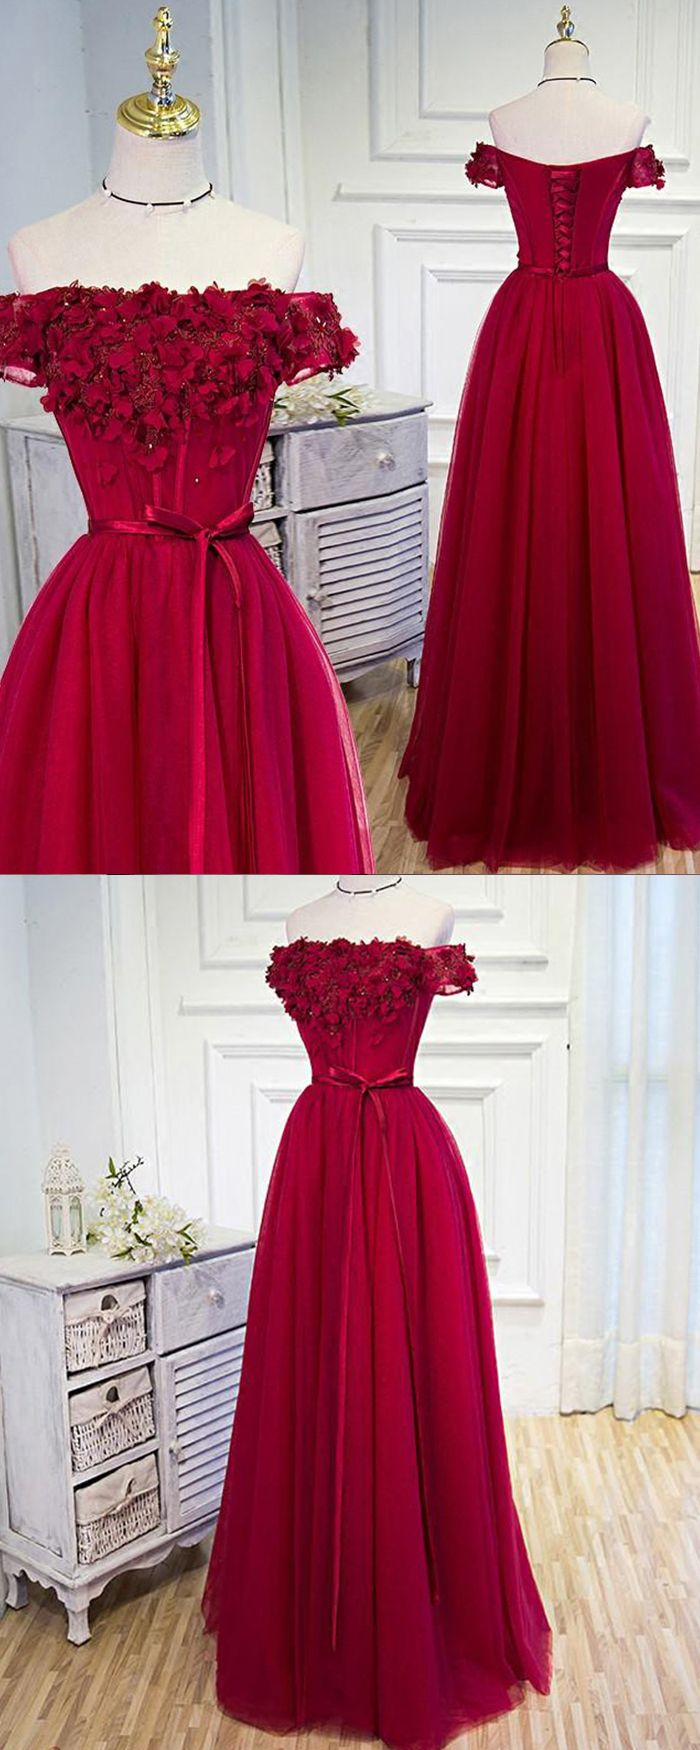 Off the shoulder red tulle long prom dress with handmade flowers